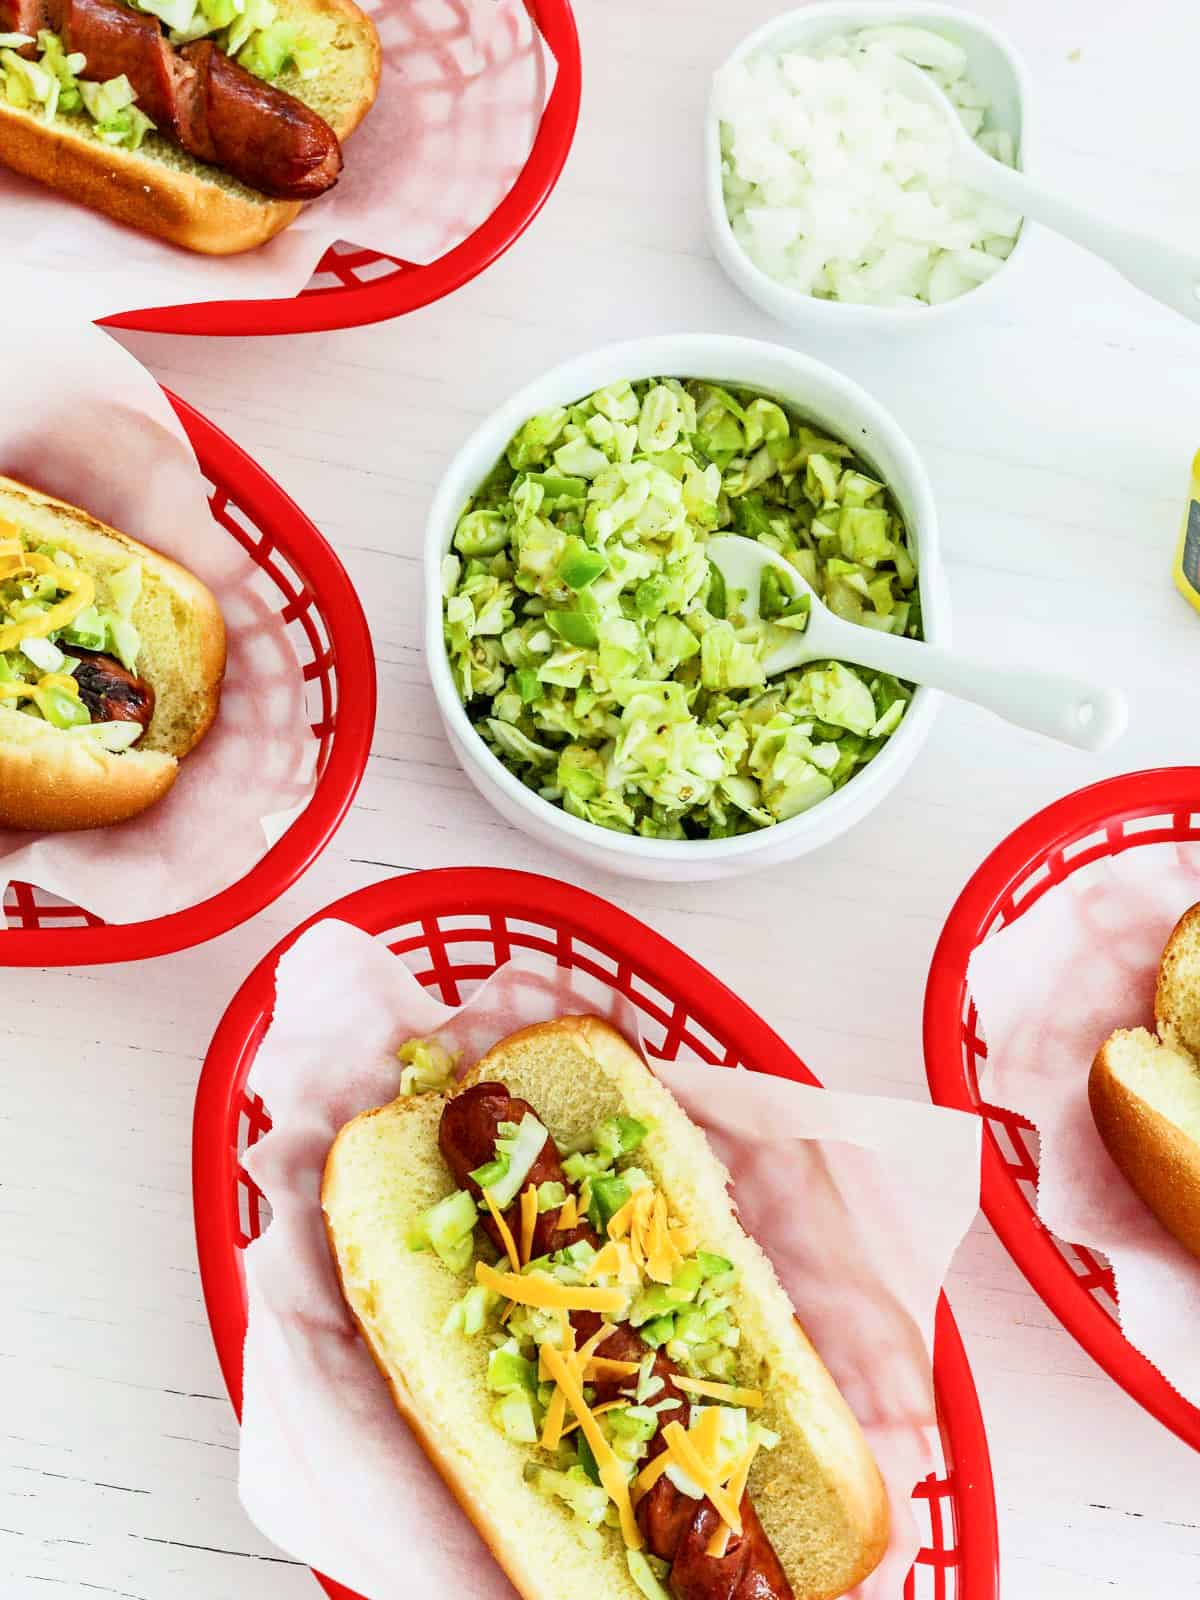 Red food baskets filled with hot dogs and toppings at a cookout party.